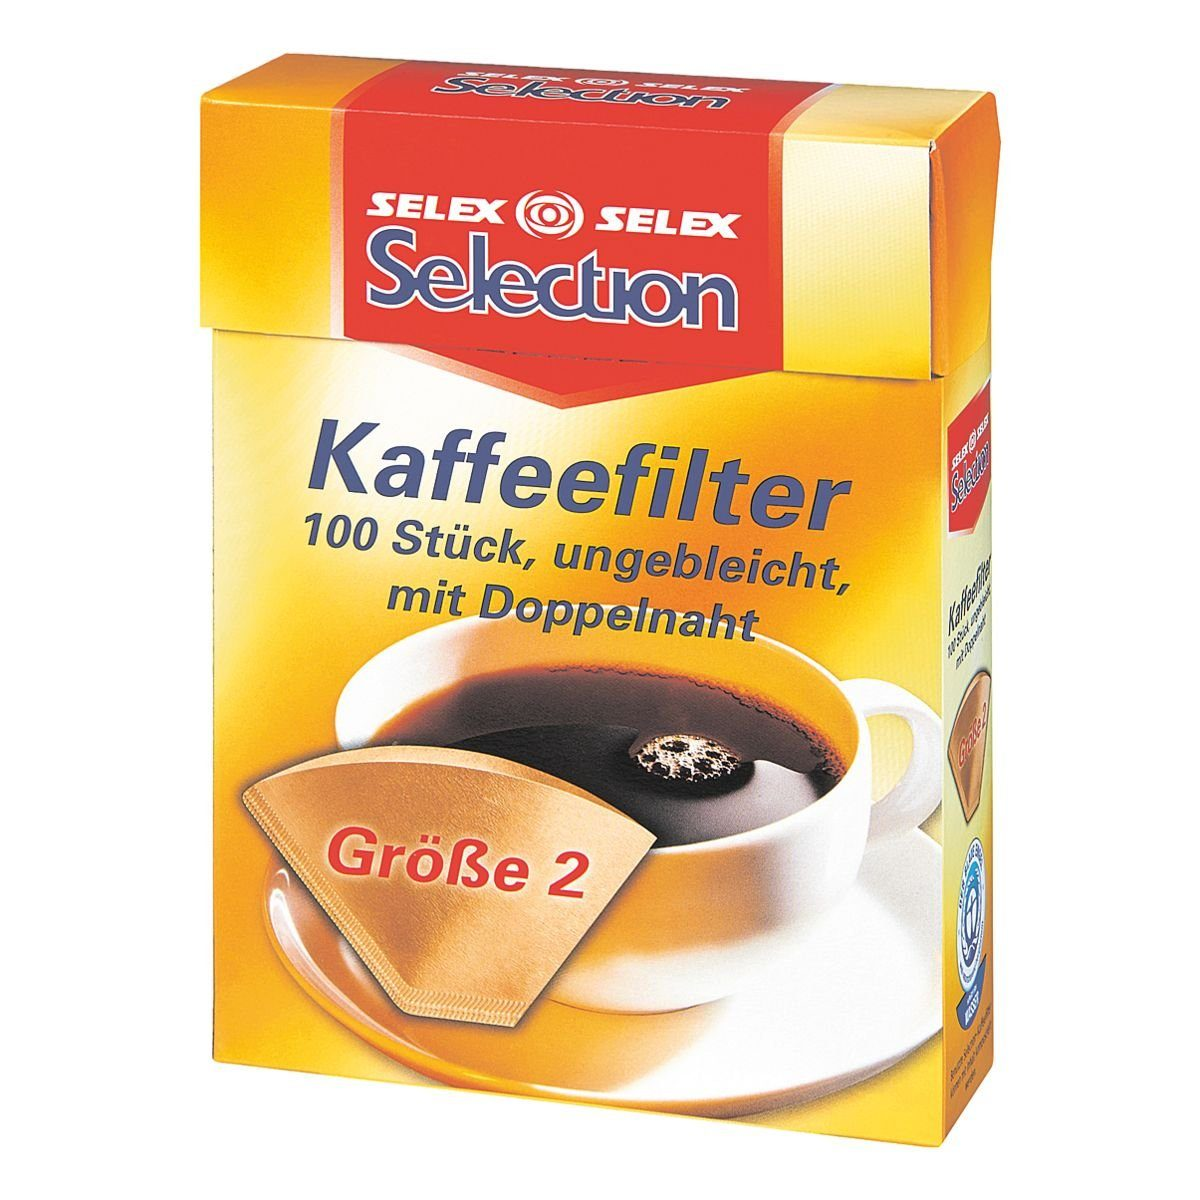 Selex Selection Kaffeefilter